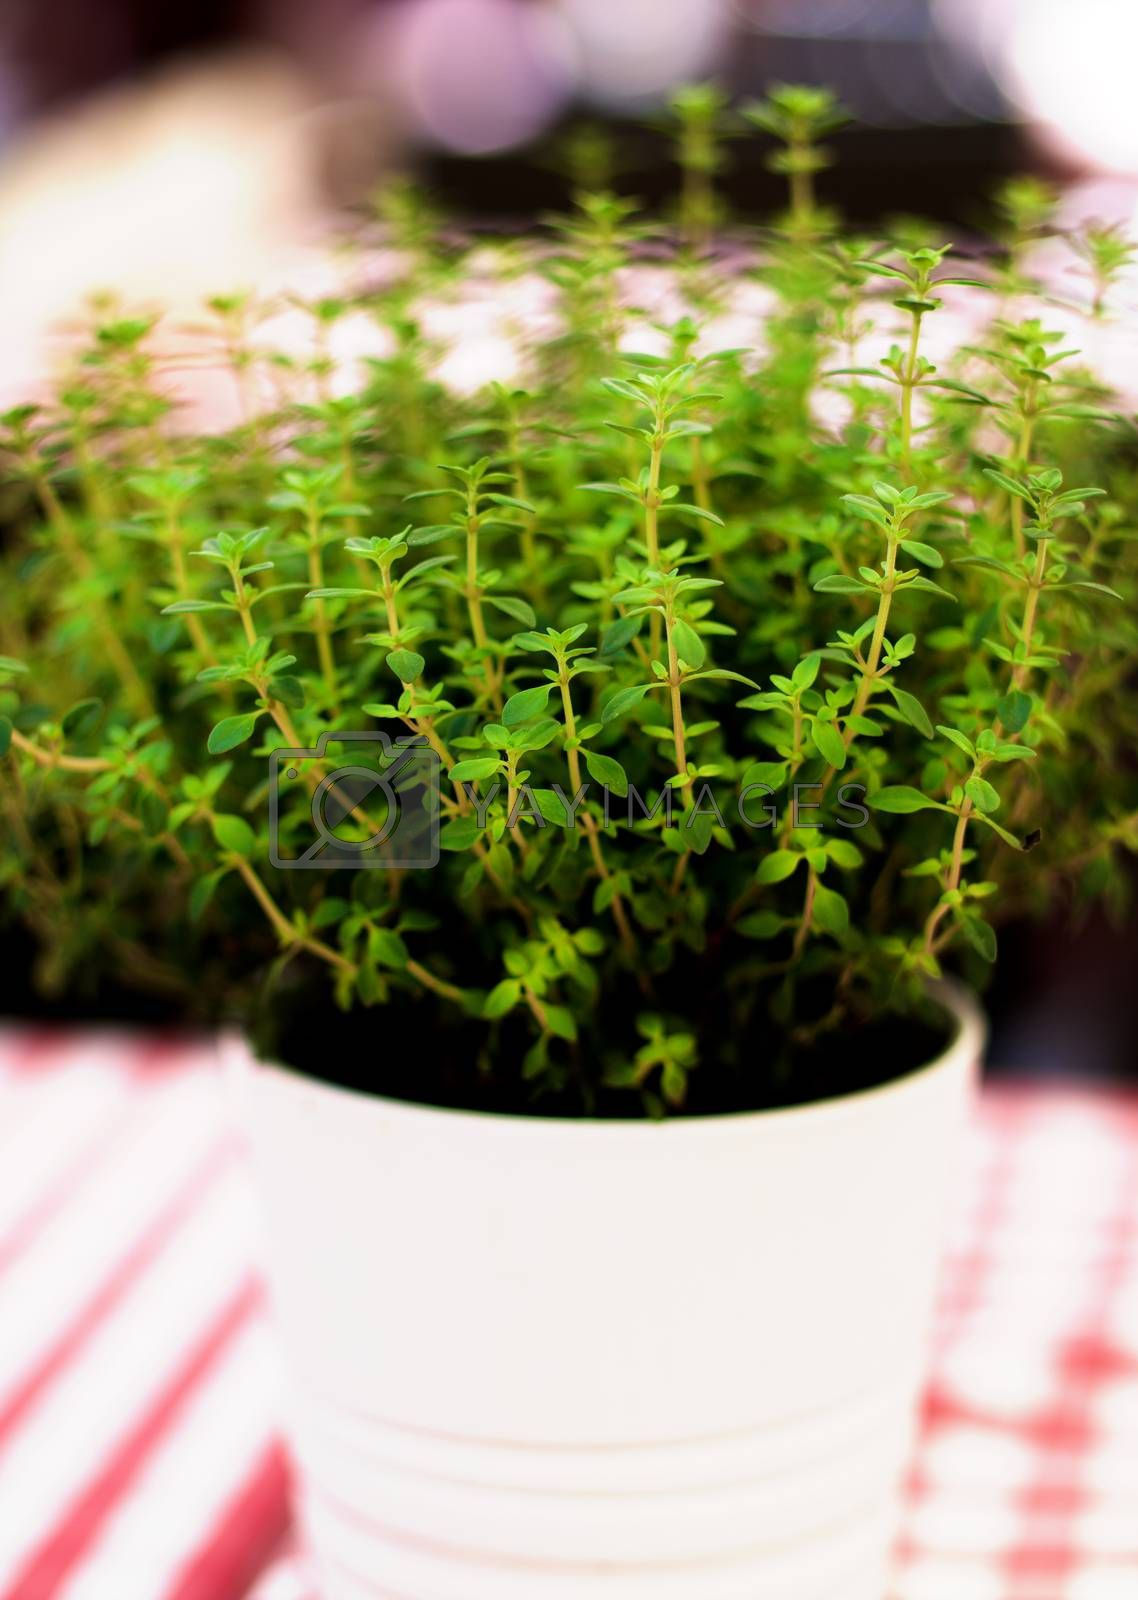 Fresh Thyme Shots in White Flower Pot closeup on Blurred background Outdoors. Focus on Foreground